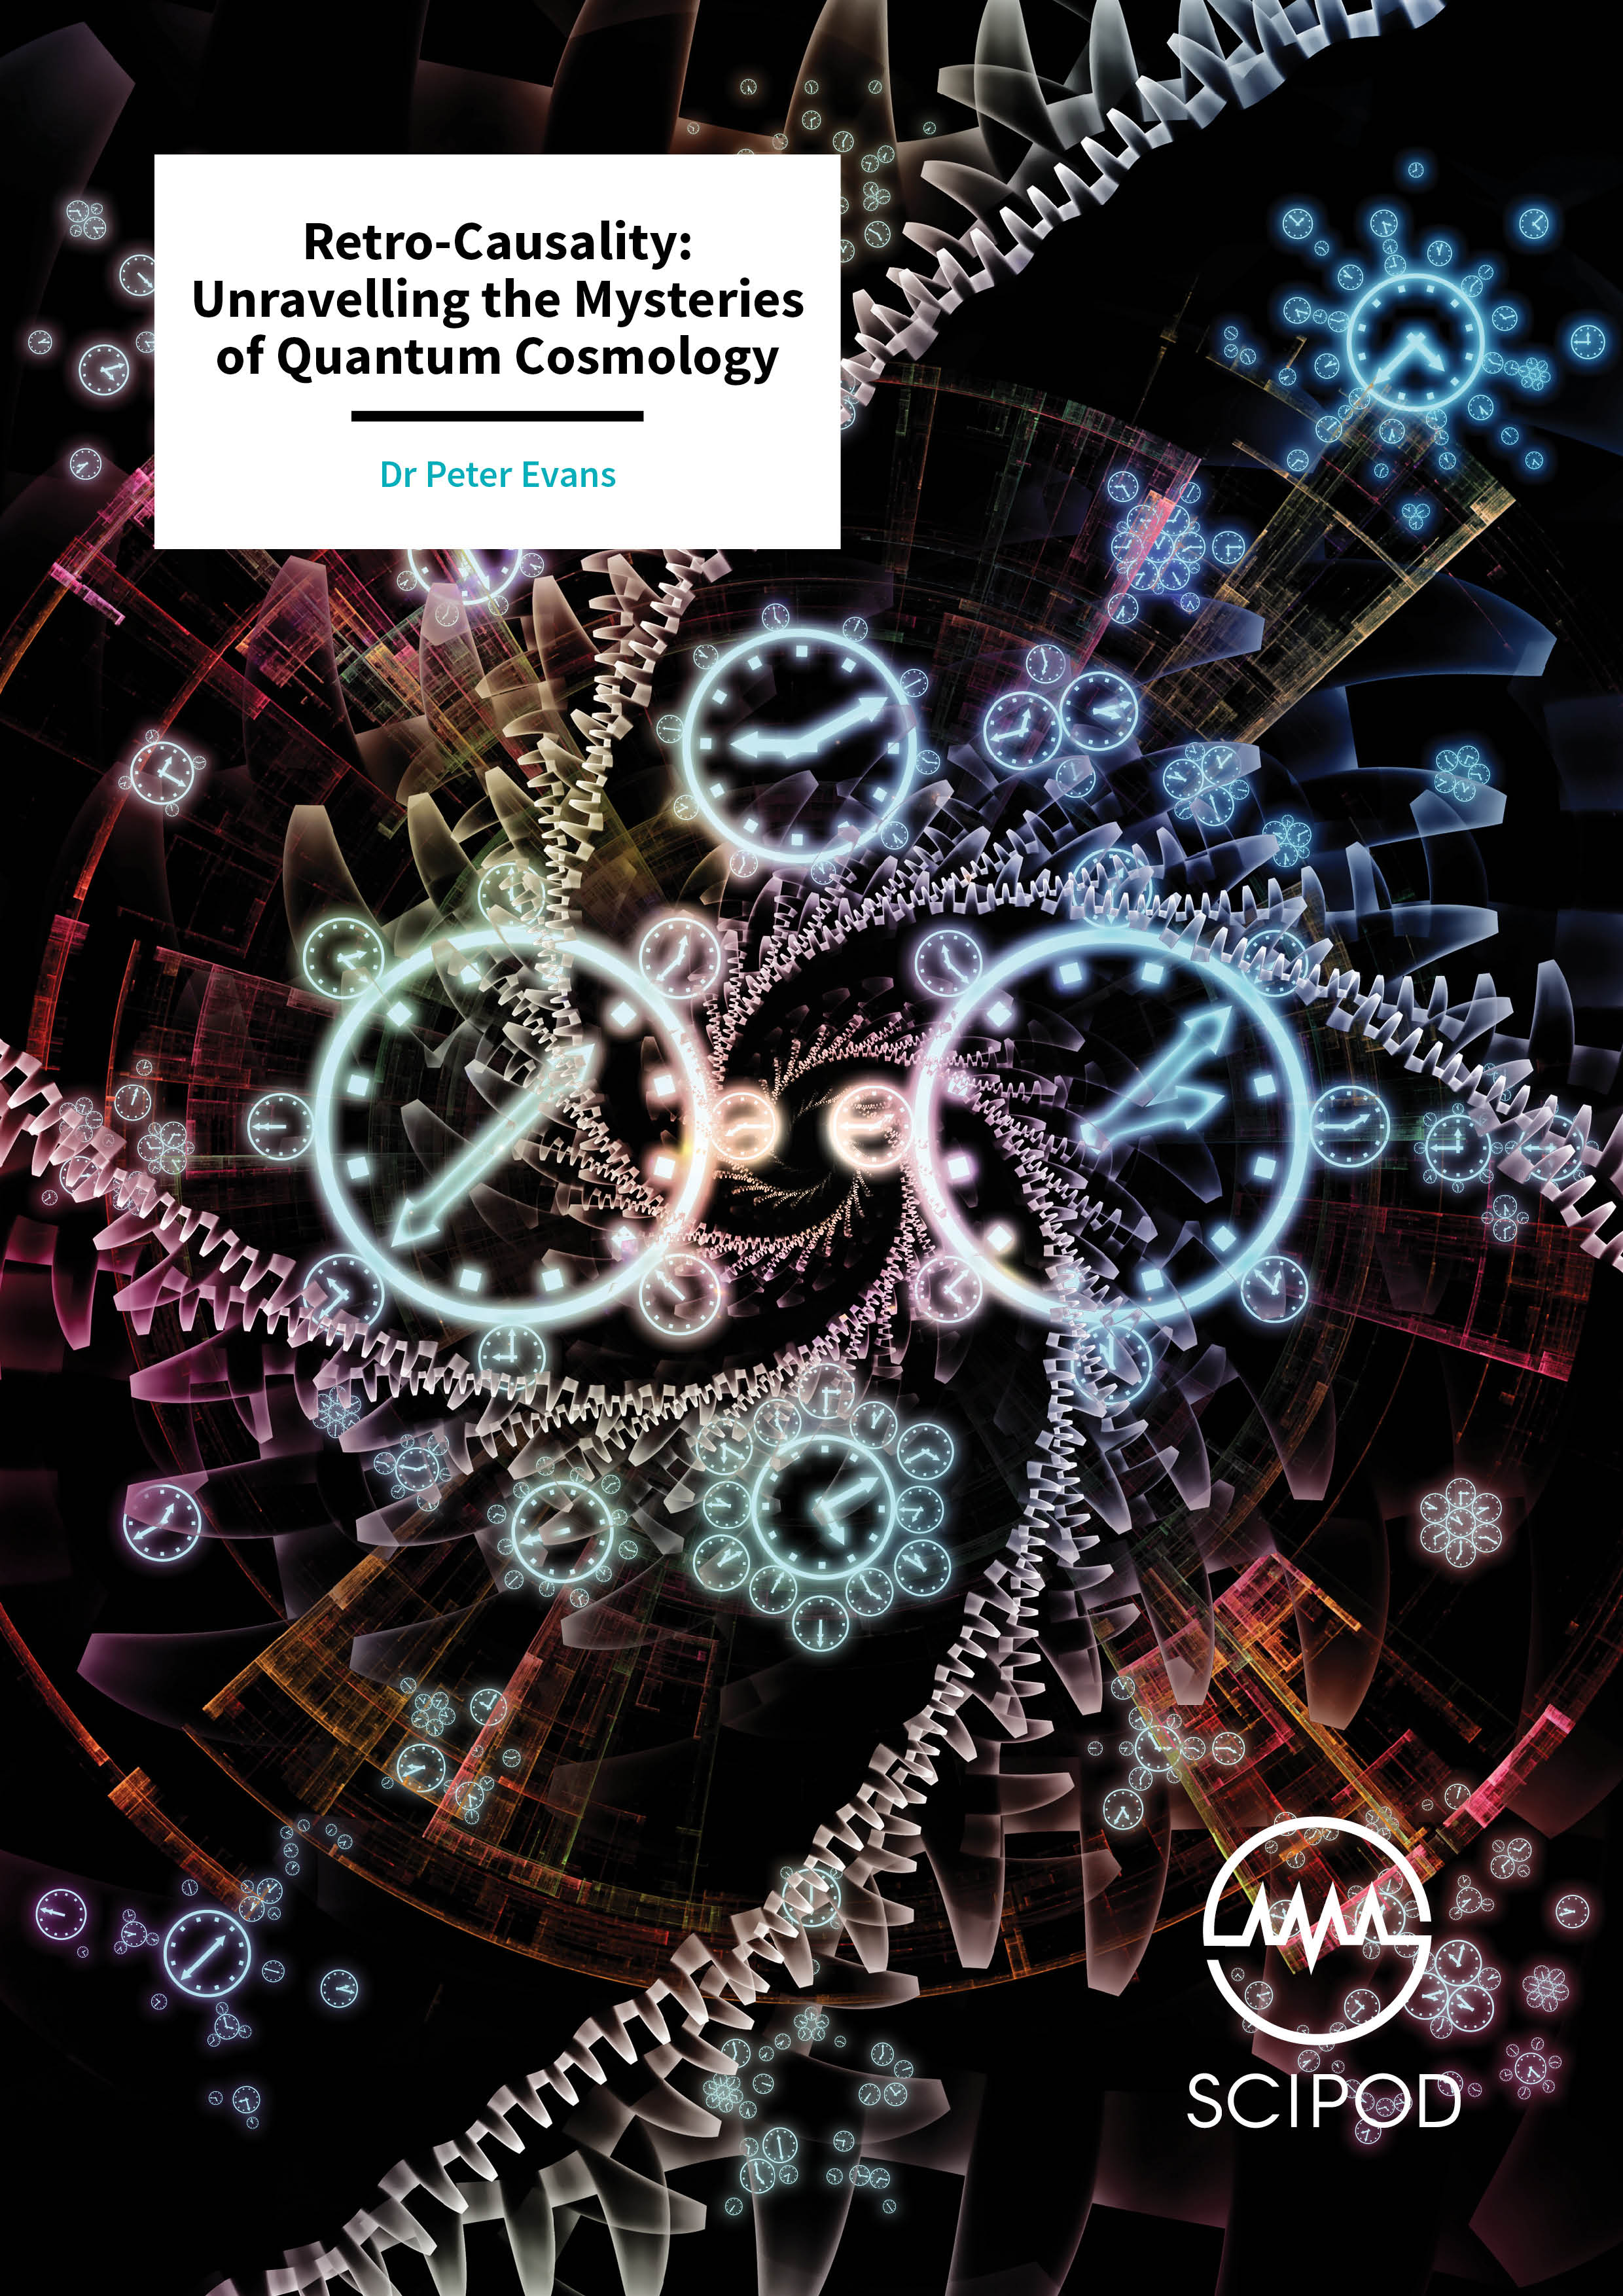 Unravelling The Mysteries Of Quantum Cosmology – Dr Peter Evans, University Of Queensland